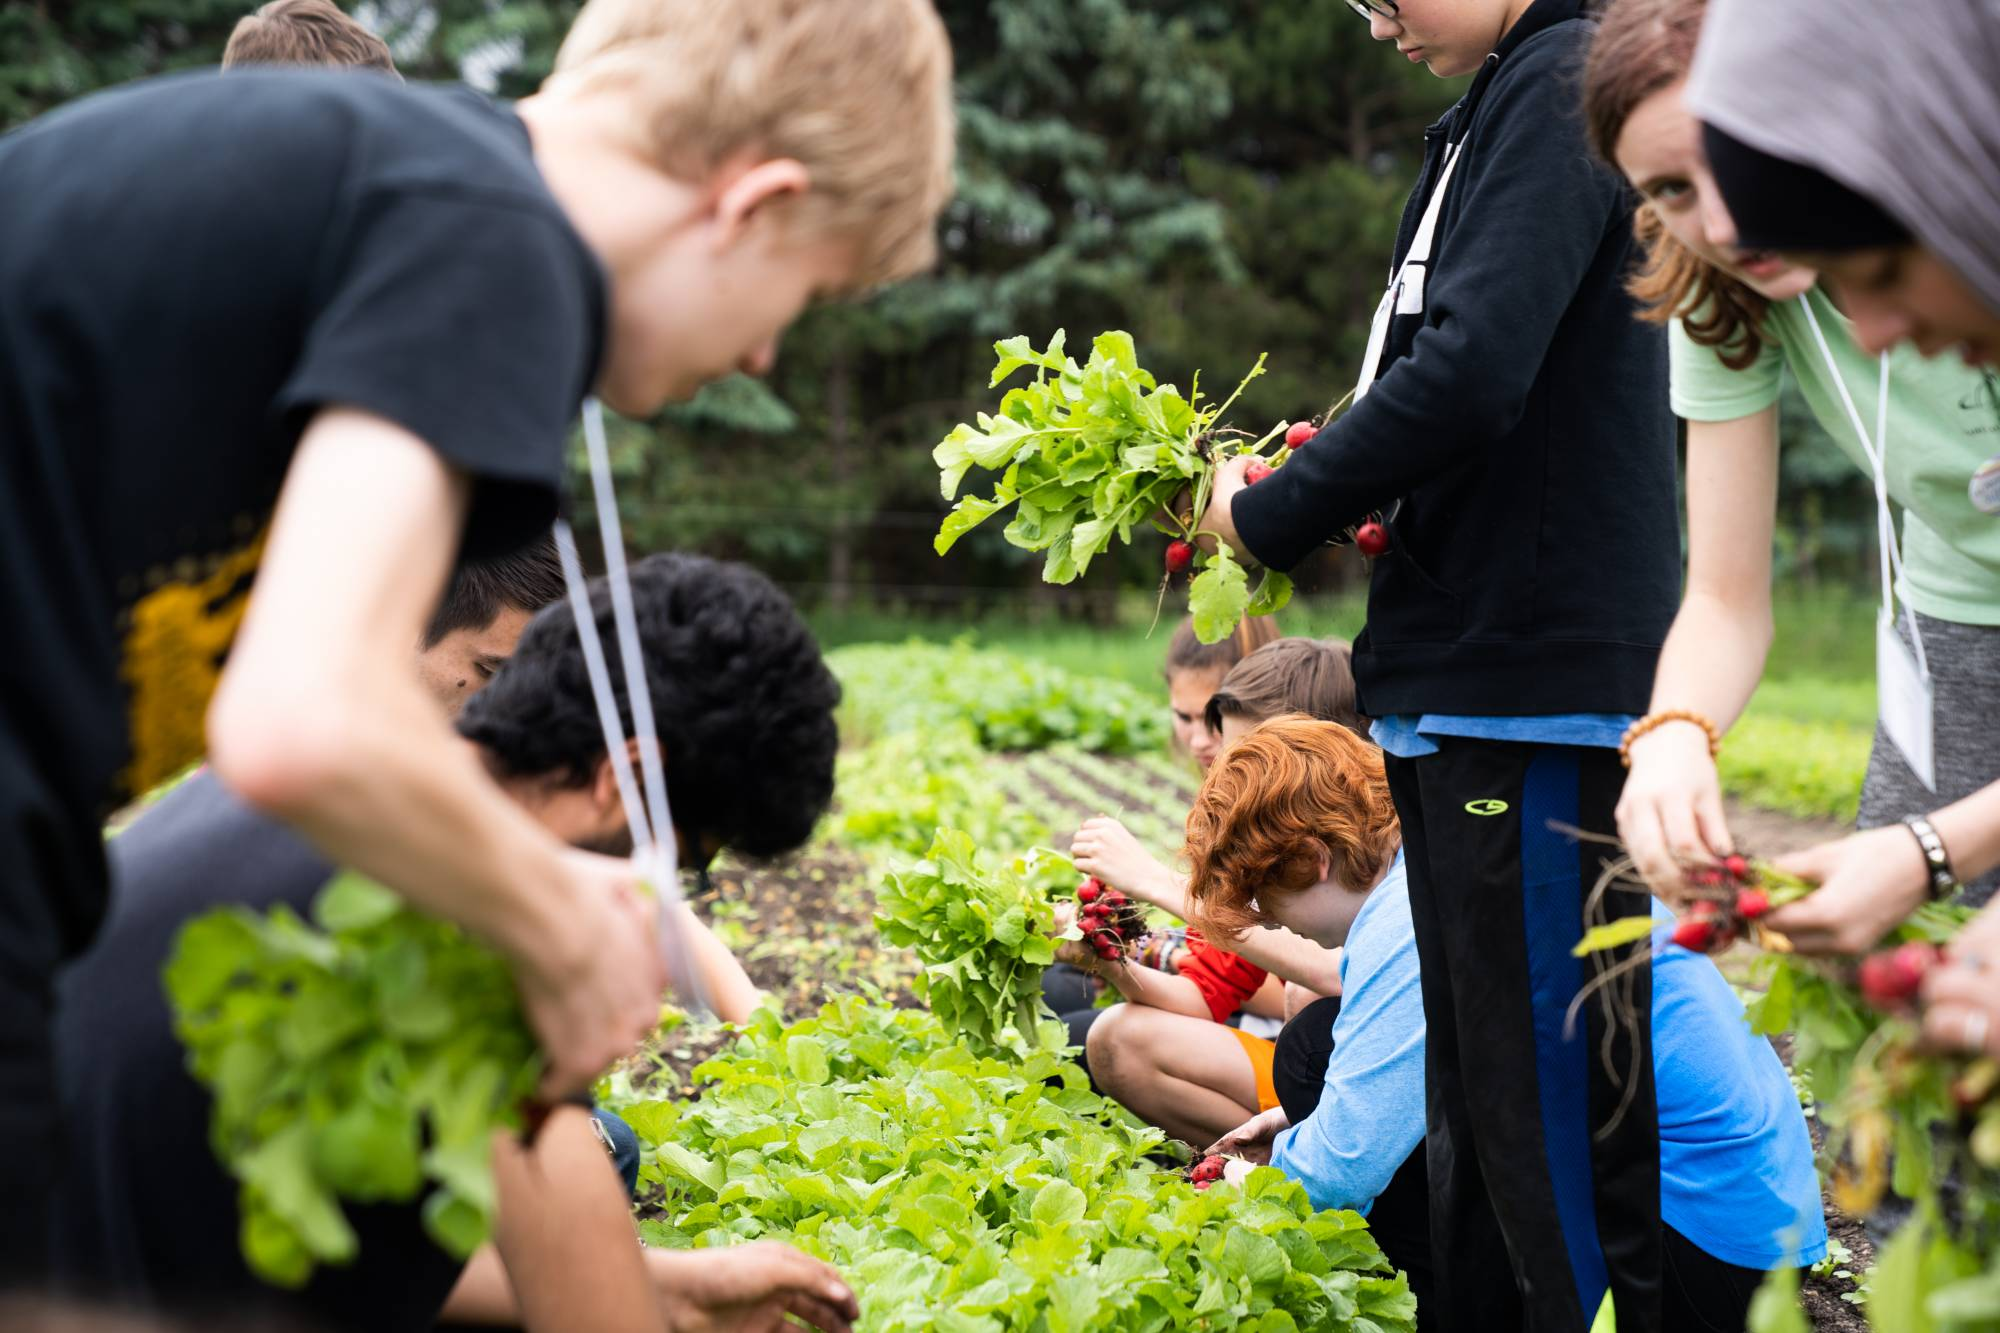 Students work on crops at Plainsong Farm